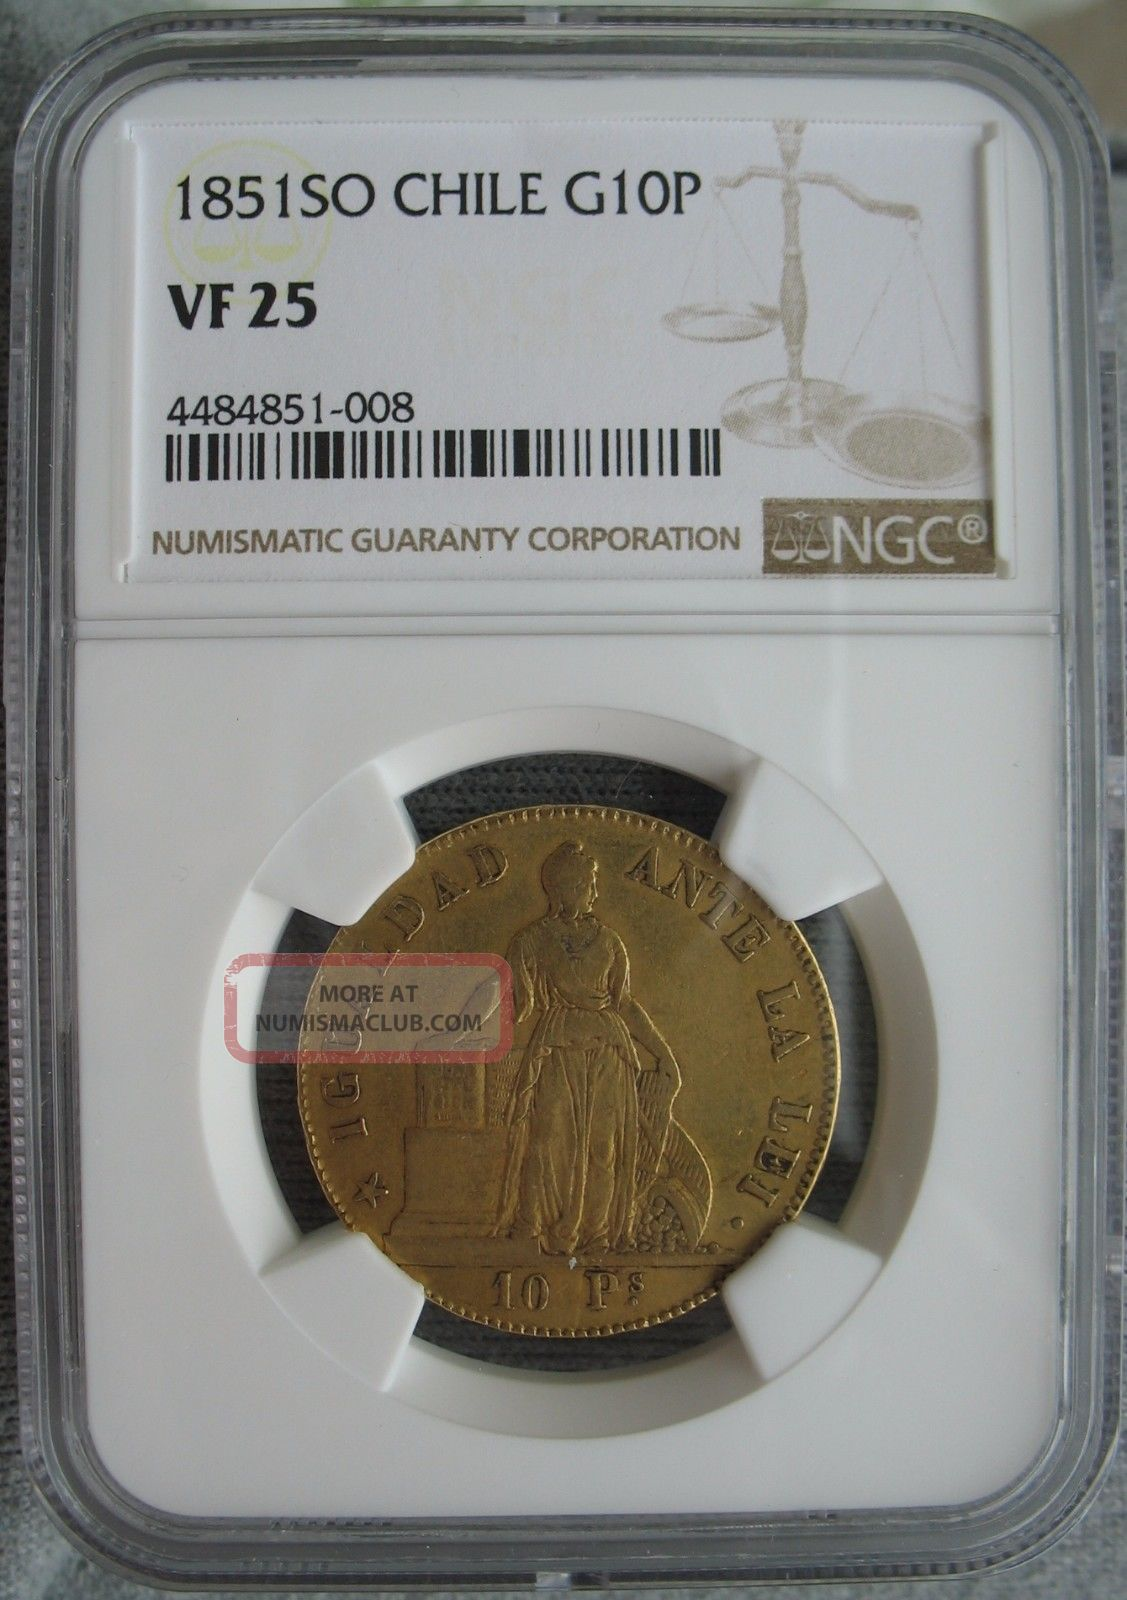 1851 So Chile Gold 10 Pesos Ngc Vf - 25 Coins: World photo